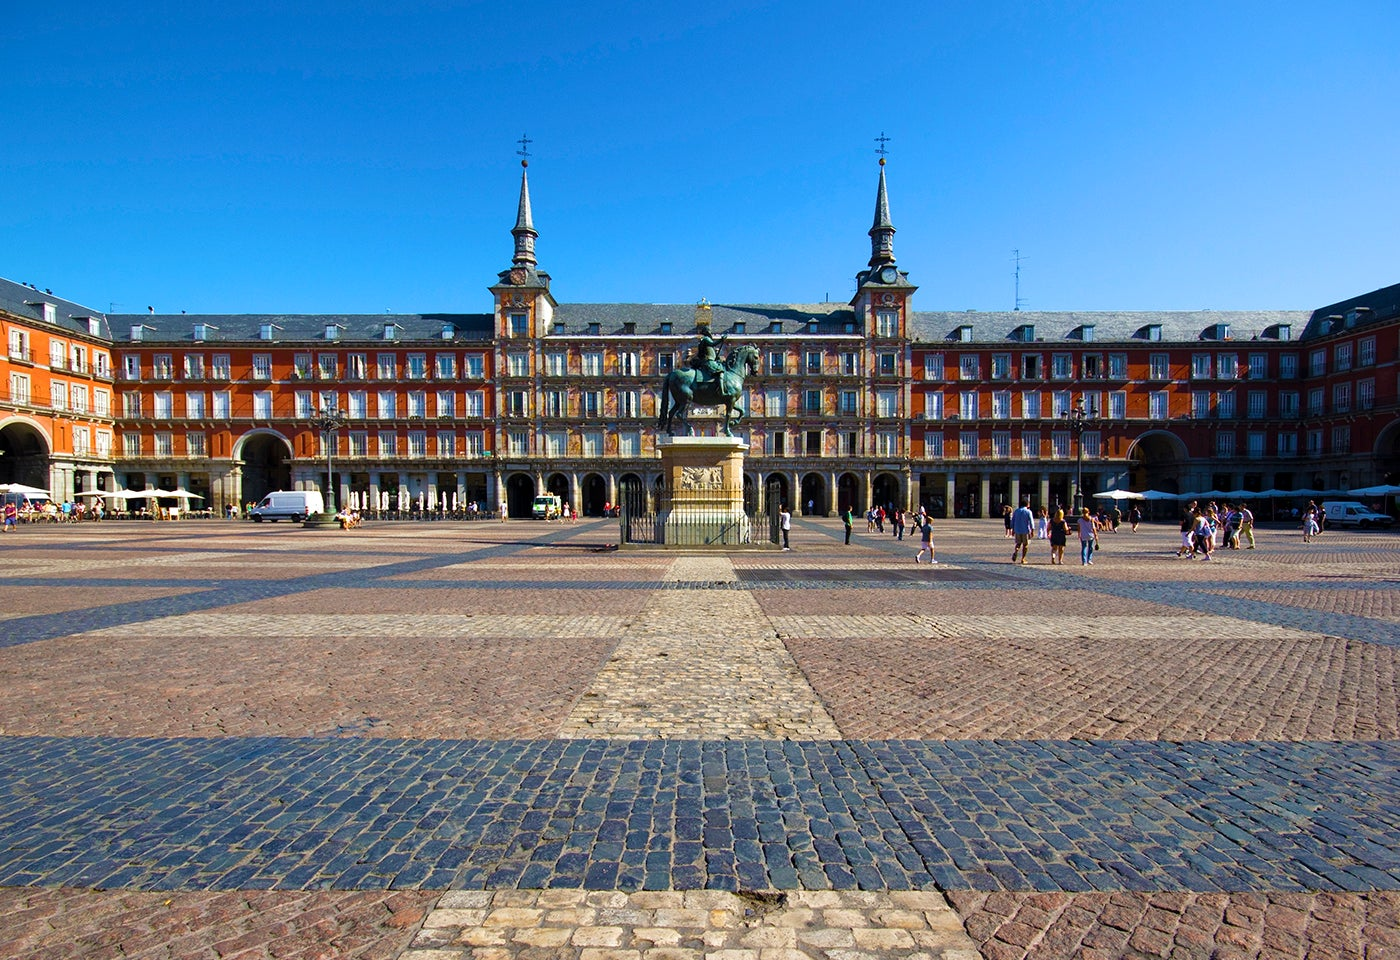 Conoce la historia de la Plaza Mayor de Madrid